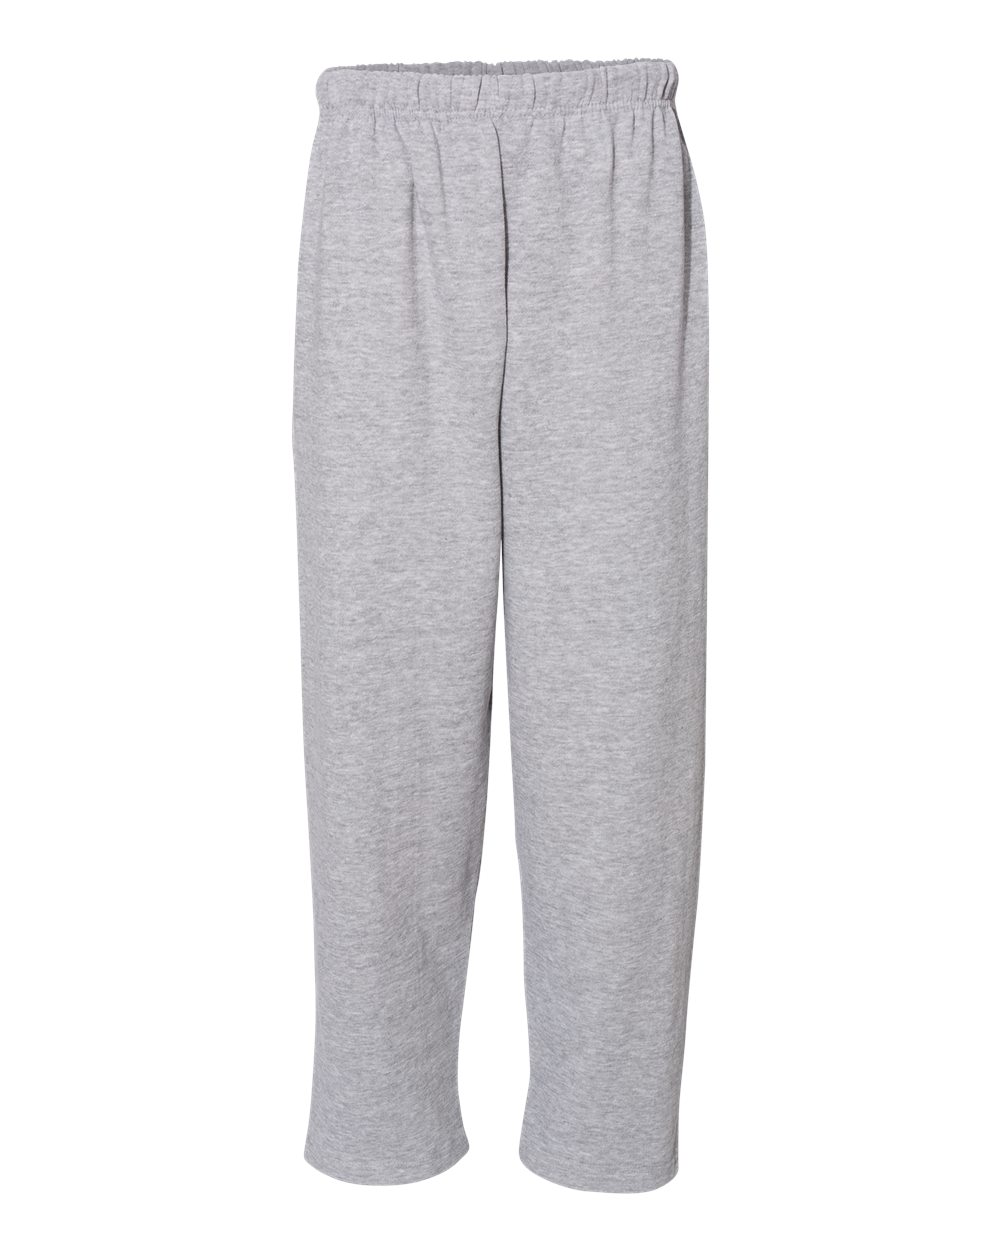 C2-Sport-Mens-Open-Bottom-Sweatpants-With-Pockets-5577-up-to-4XL thumbnail 15